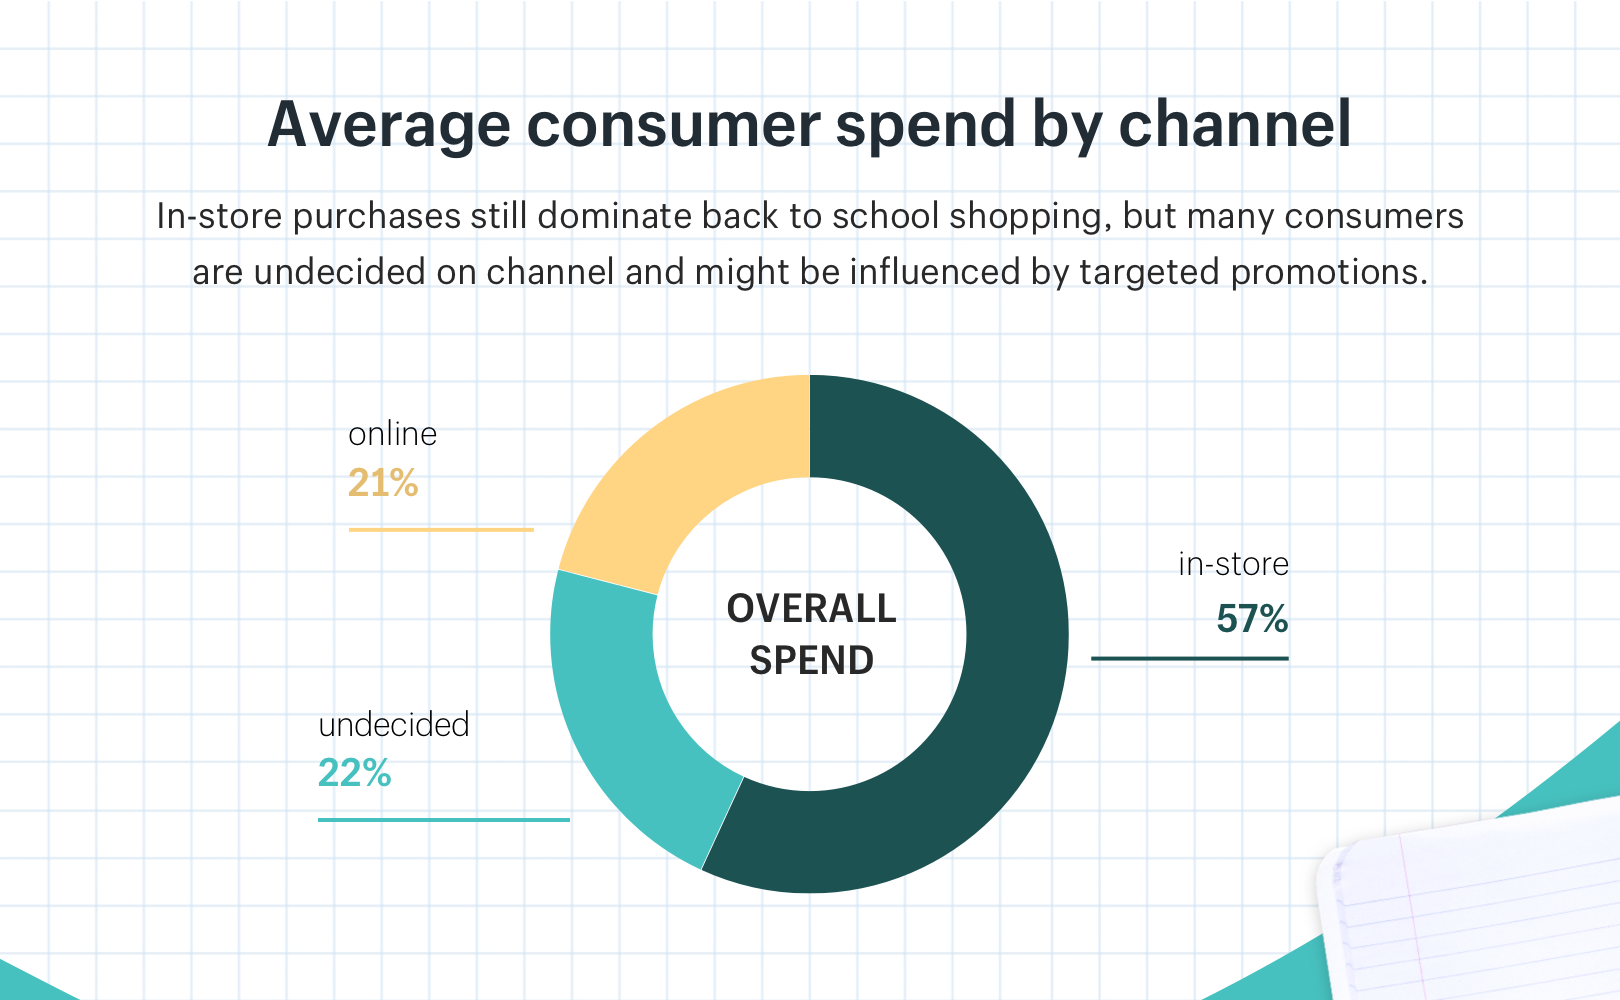 Average spend per channel for back-to-school shoppers